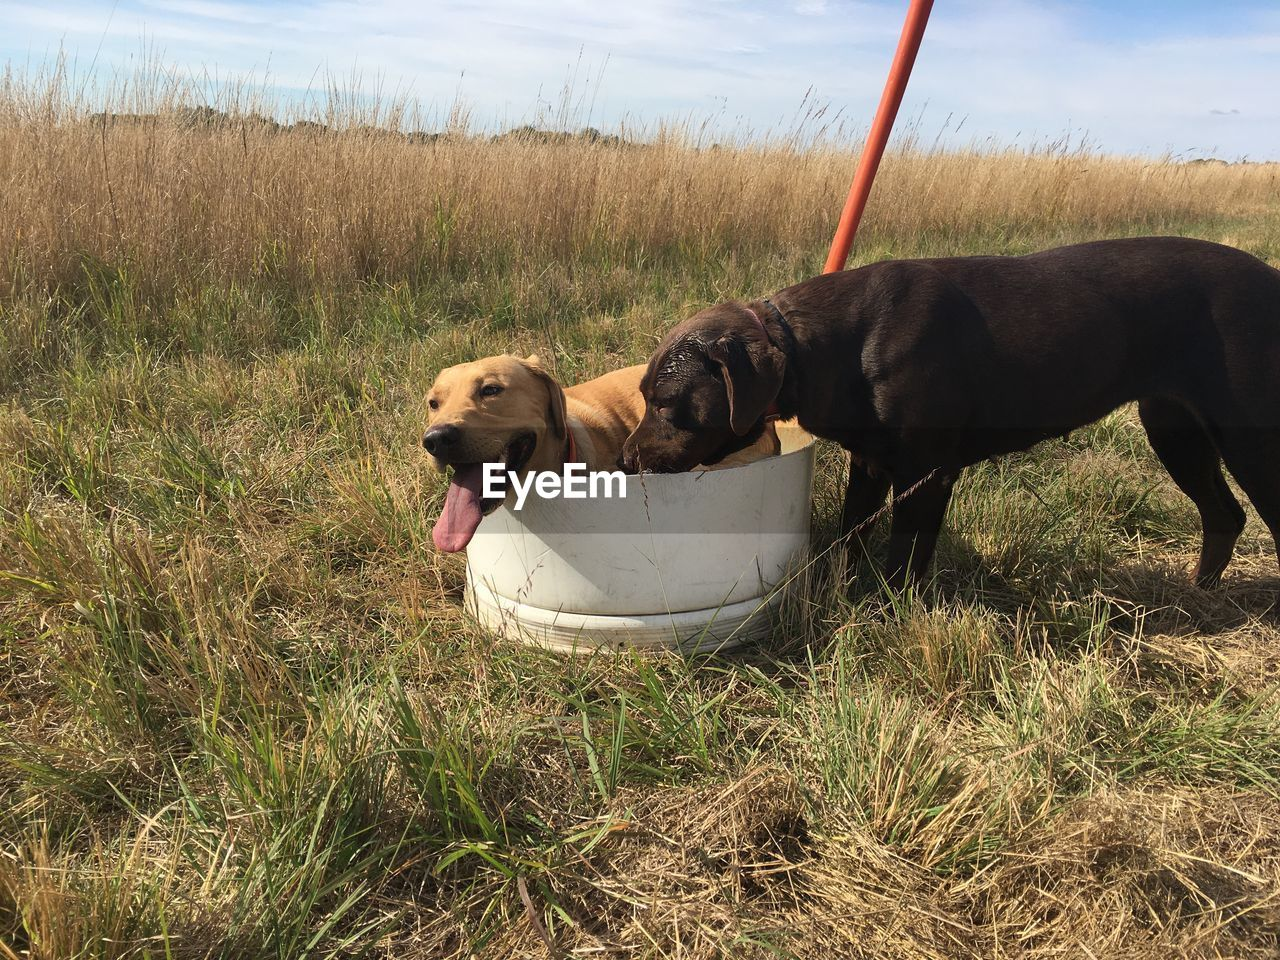 pets, domestic, domestic animals, canine, dog, mammal, animal themes, animal, one animal, vertebrate, grass, plant, field, land, nature, day, no people, relaxation, outdoors, growth, mouth open